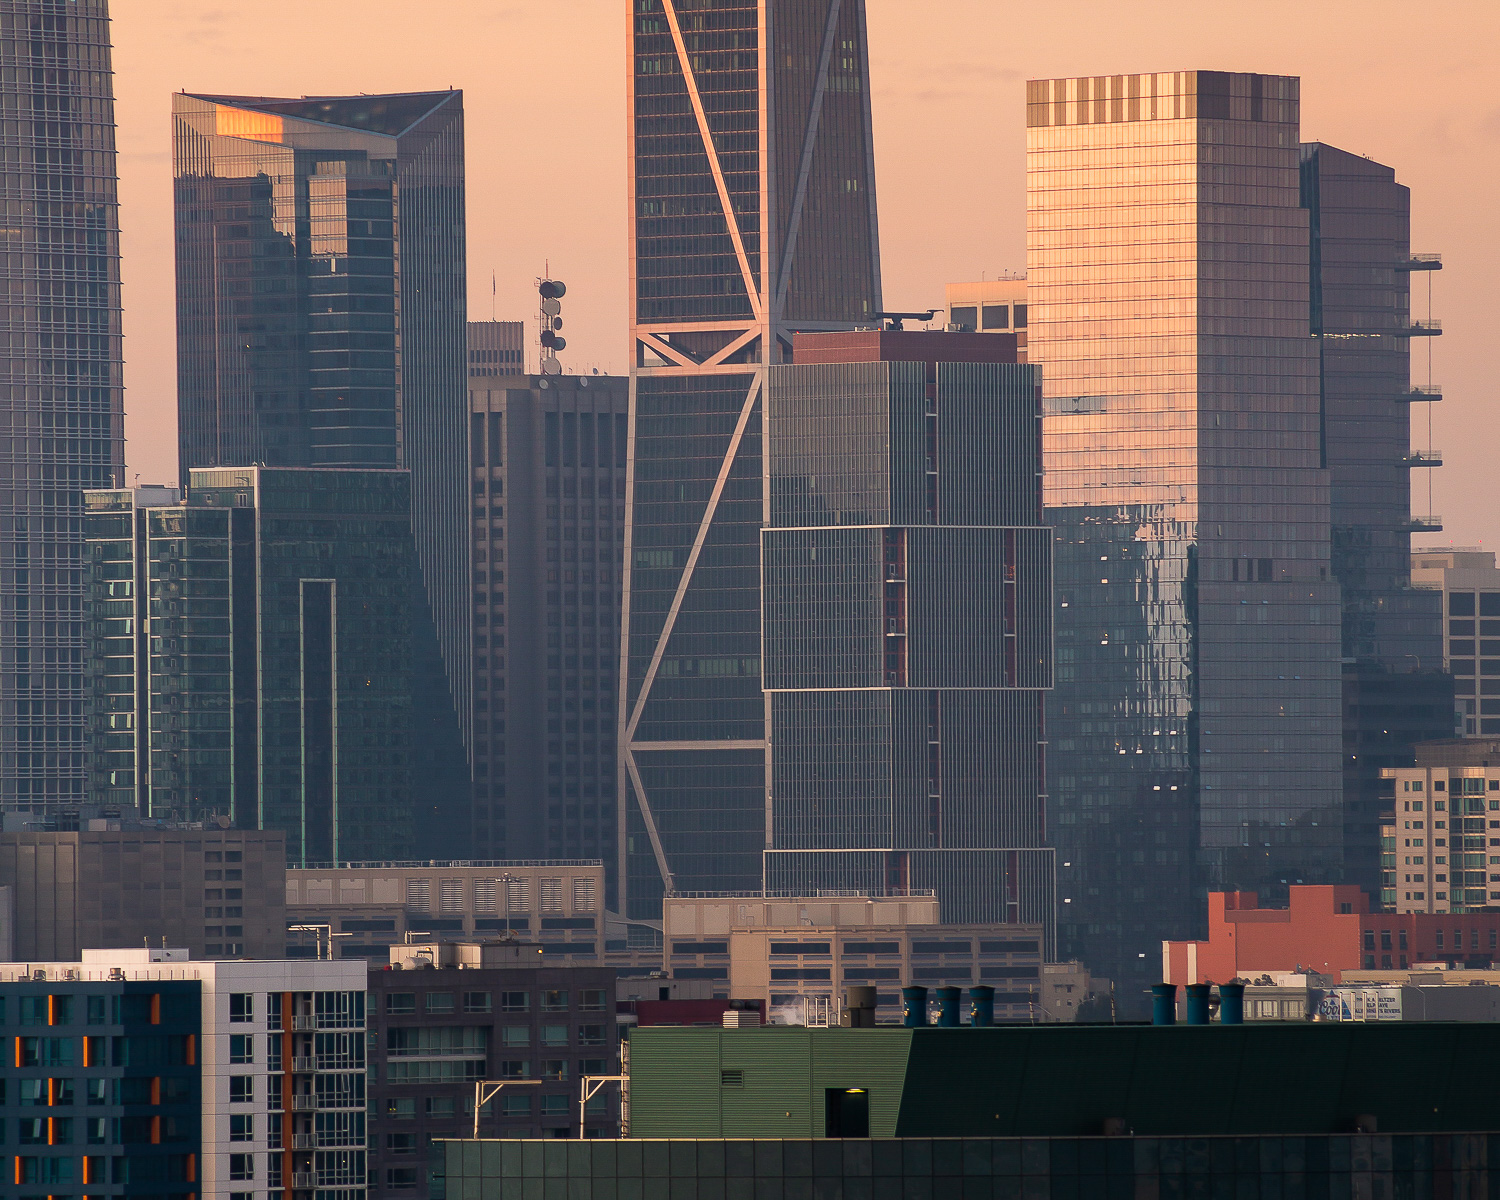 500 Folsom Street in the skyline, image by Andrew Campbell Nelson